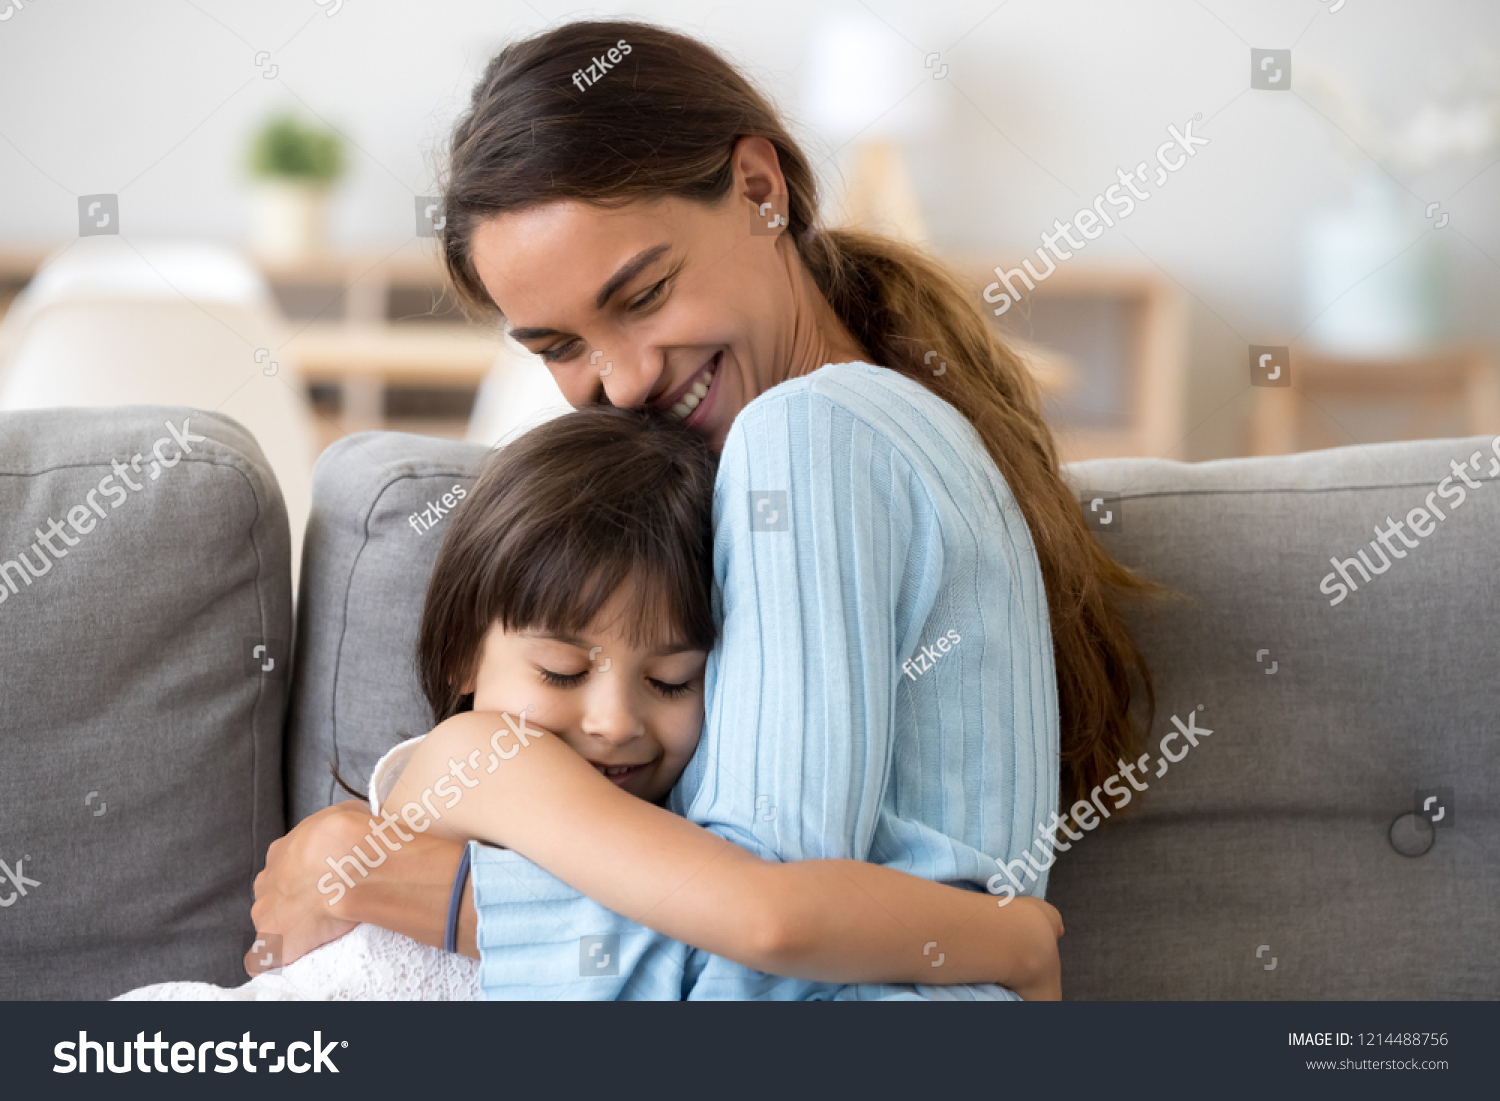 Mother and daughter with closed eyes sitting together on sofa at home  embracing feels happy and